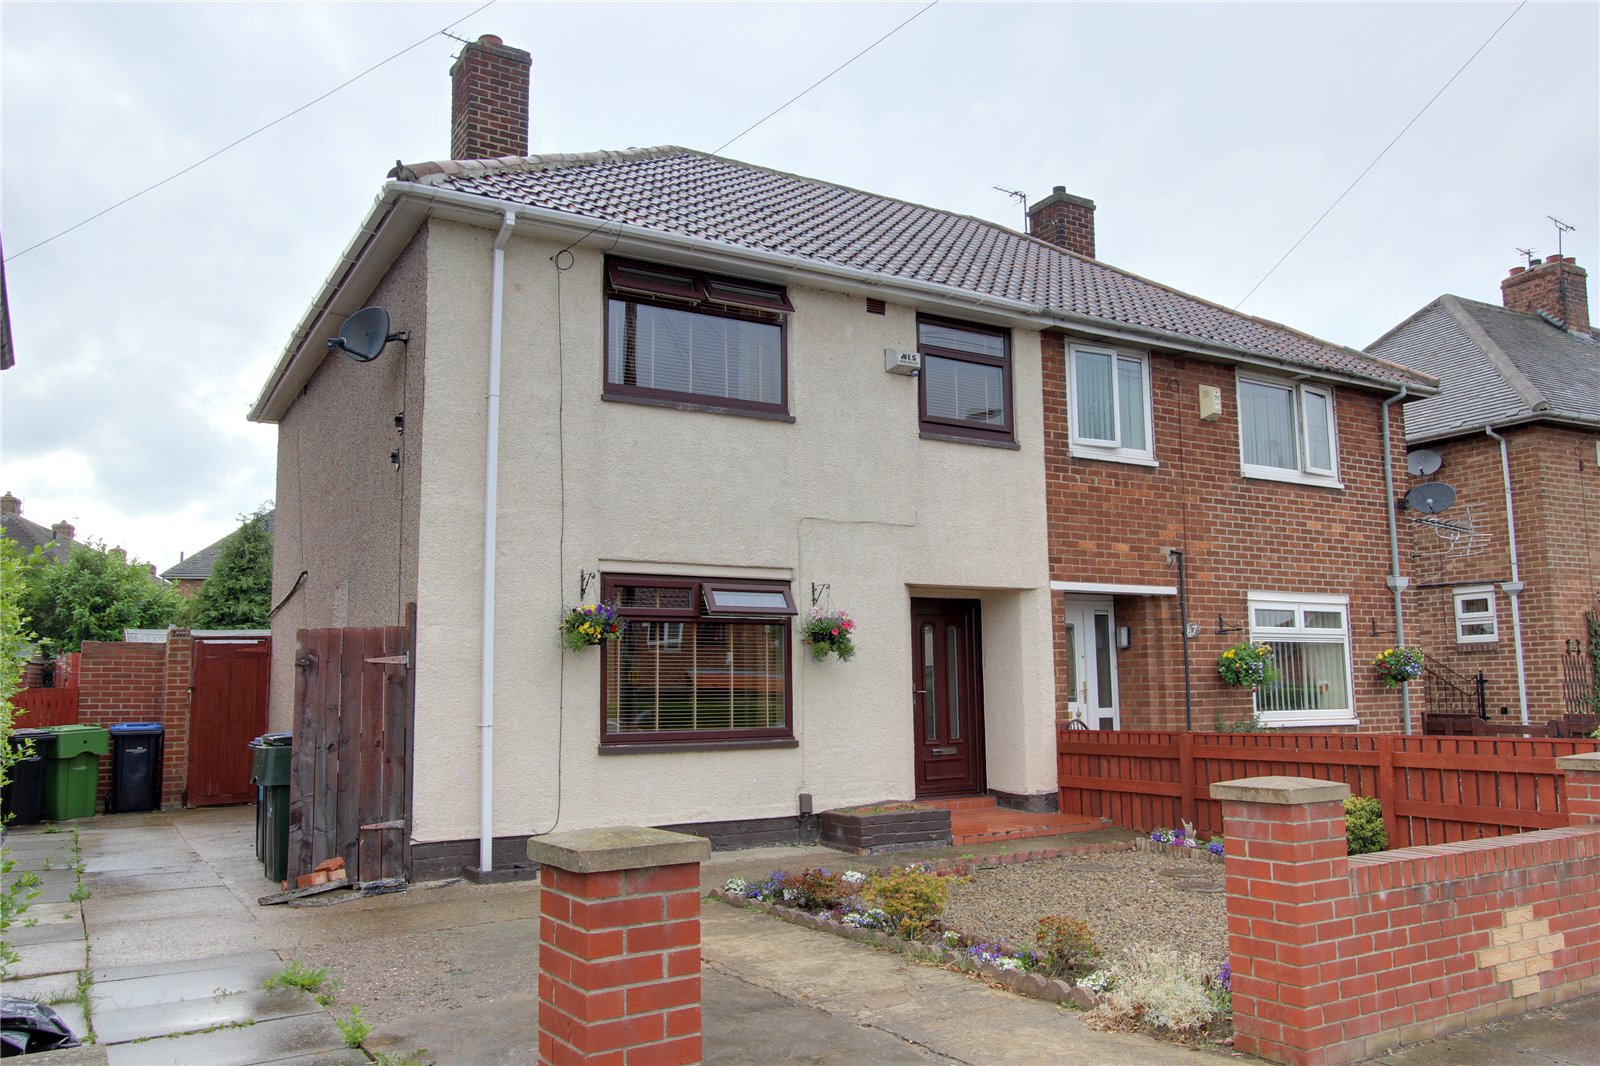 3 bed house for sale in Ingram Road, Berwick Hills  - Property Image 1